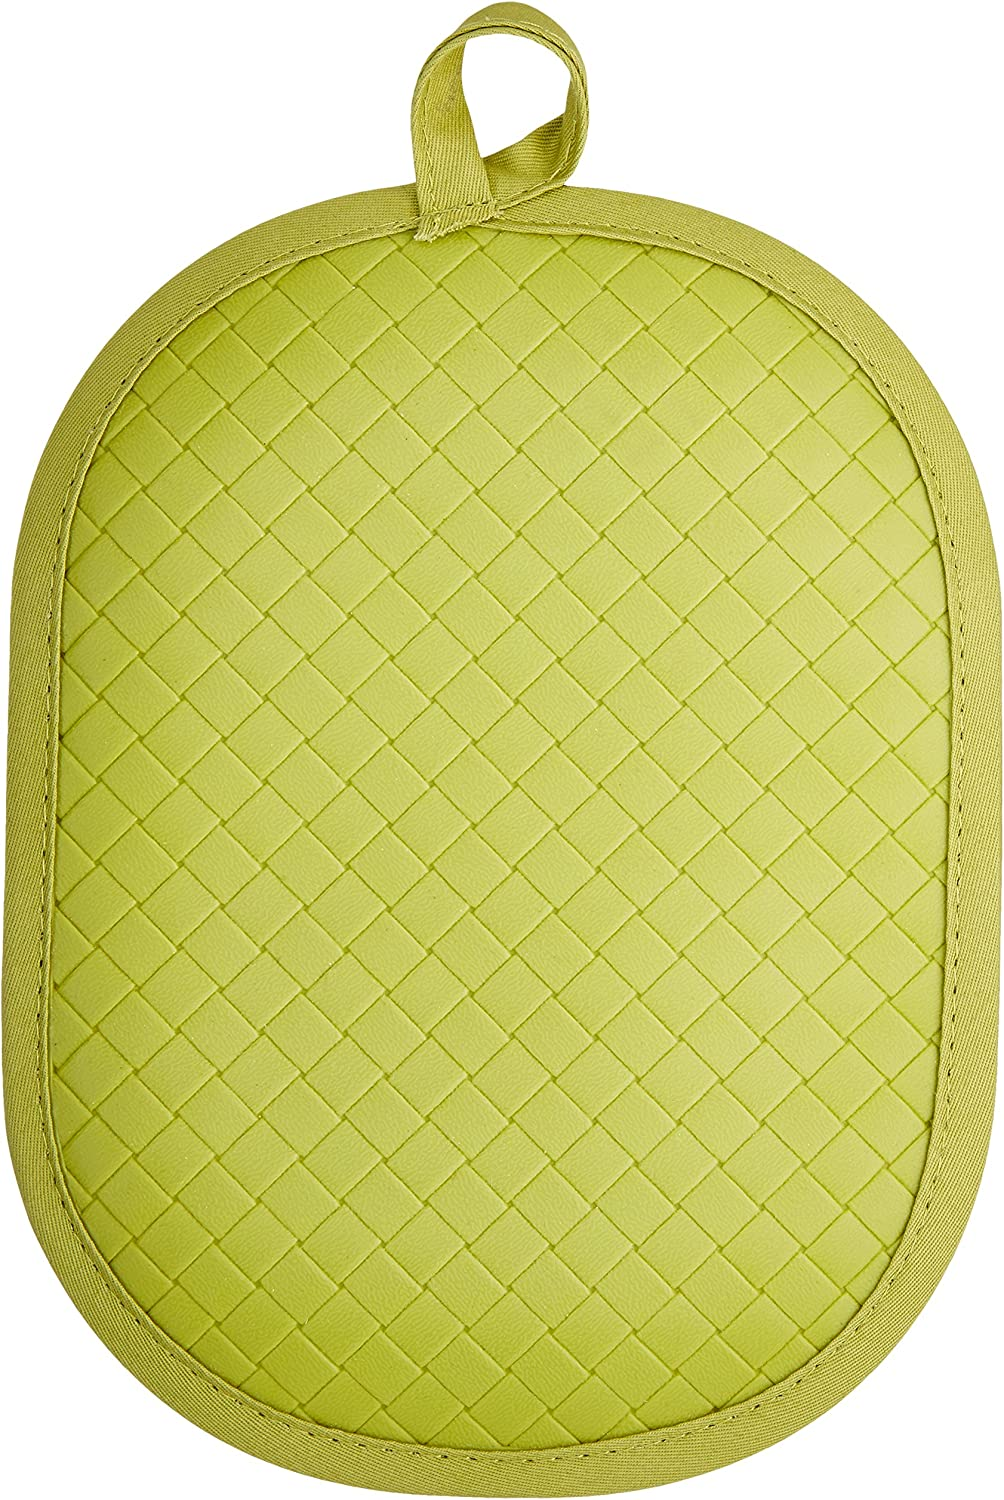 Rachael Ray Pot Holder & Trivet With Silicone Grip, Green